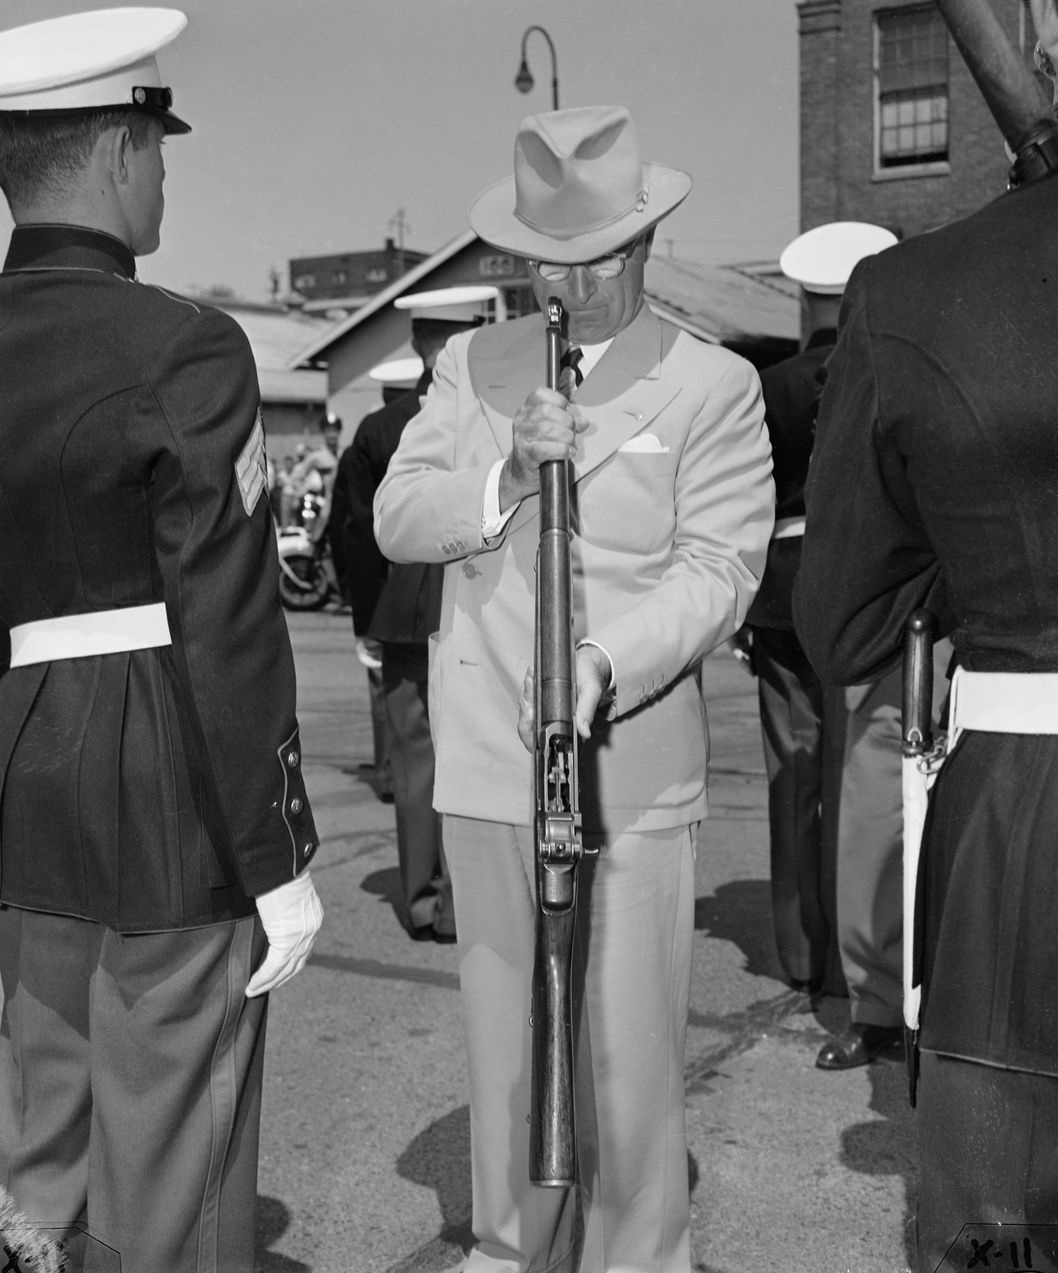 09 Jun 1948, Bremerton, Washington State, USA --- Original caption: June 9, 1948 - Bremerton, Washington: President Truman looks into the barrel of a Grand rifle during an inspection of Marine troops in Bremerton, Washington, before proceeding to Seattle, June 10, 1948 on his cross country tour. Speaking in a Seattle stadium that was about half full, the Chief Executive again charged that the Republican controlled congress has prevented passage of important legislation. --- Image by ? Bettmann/CORBIS